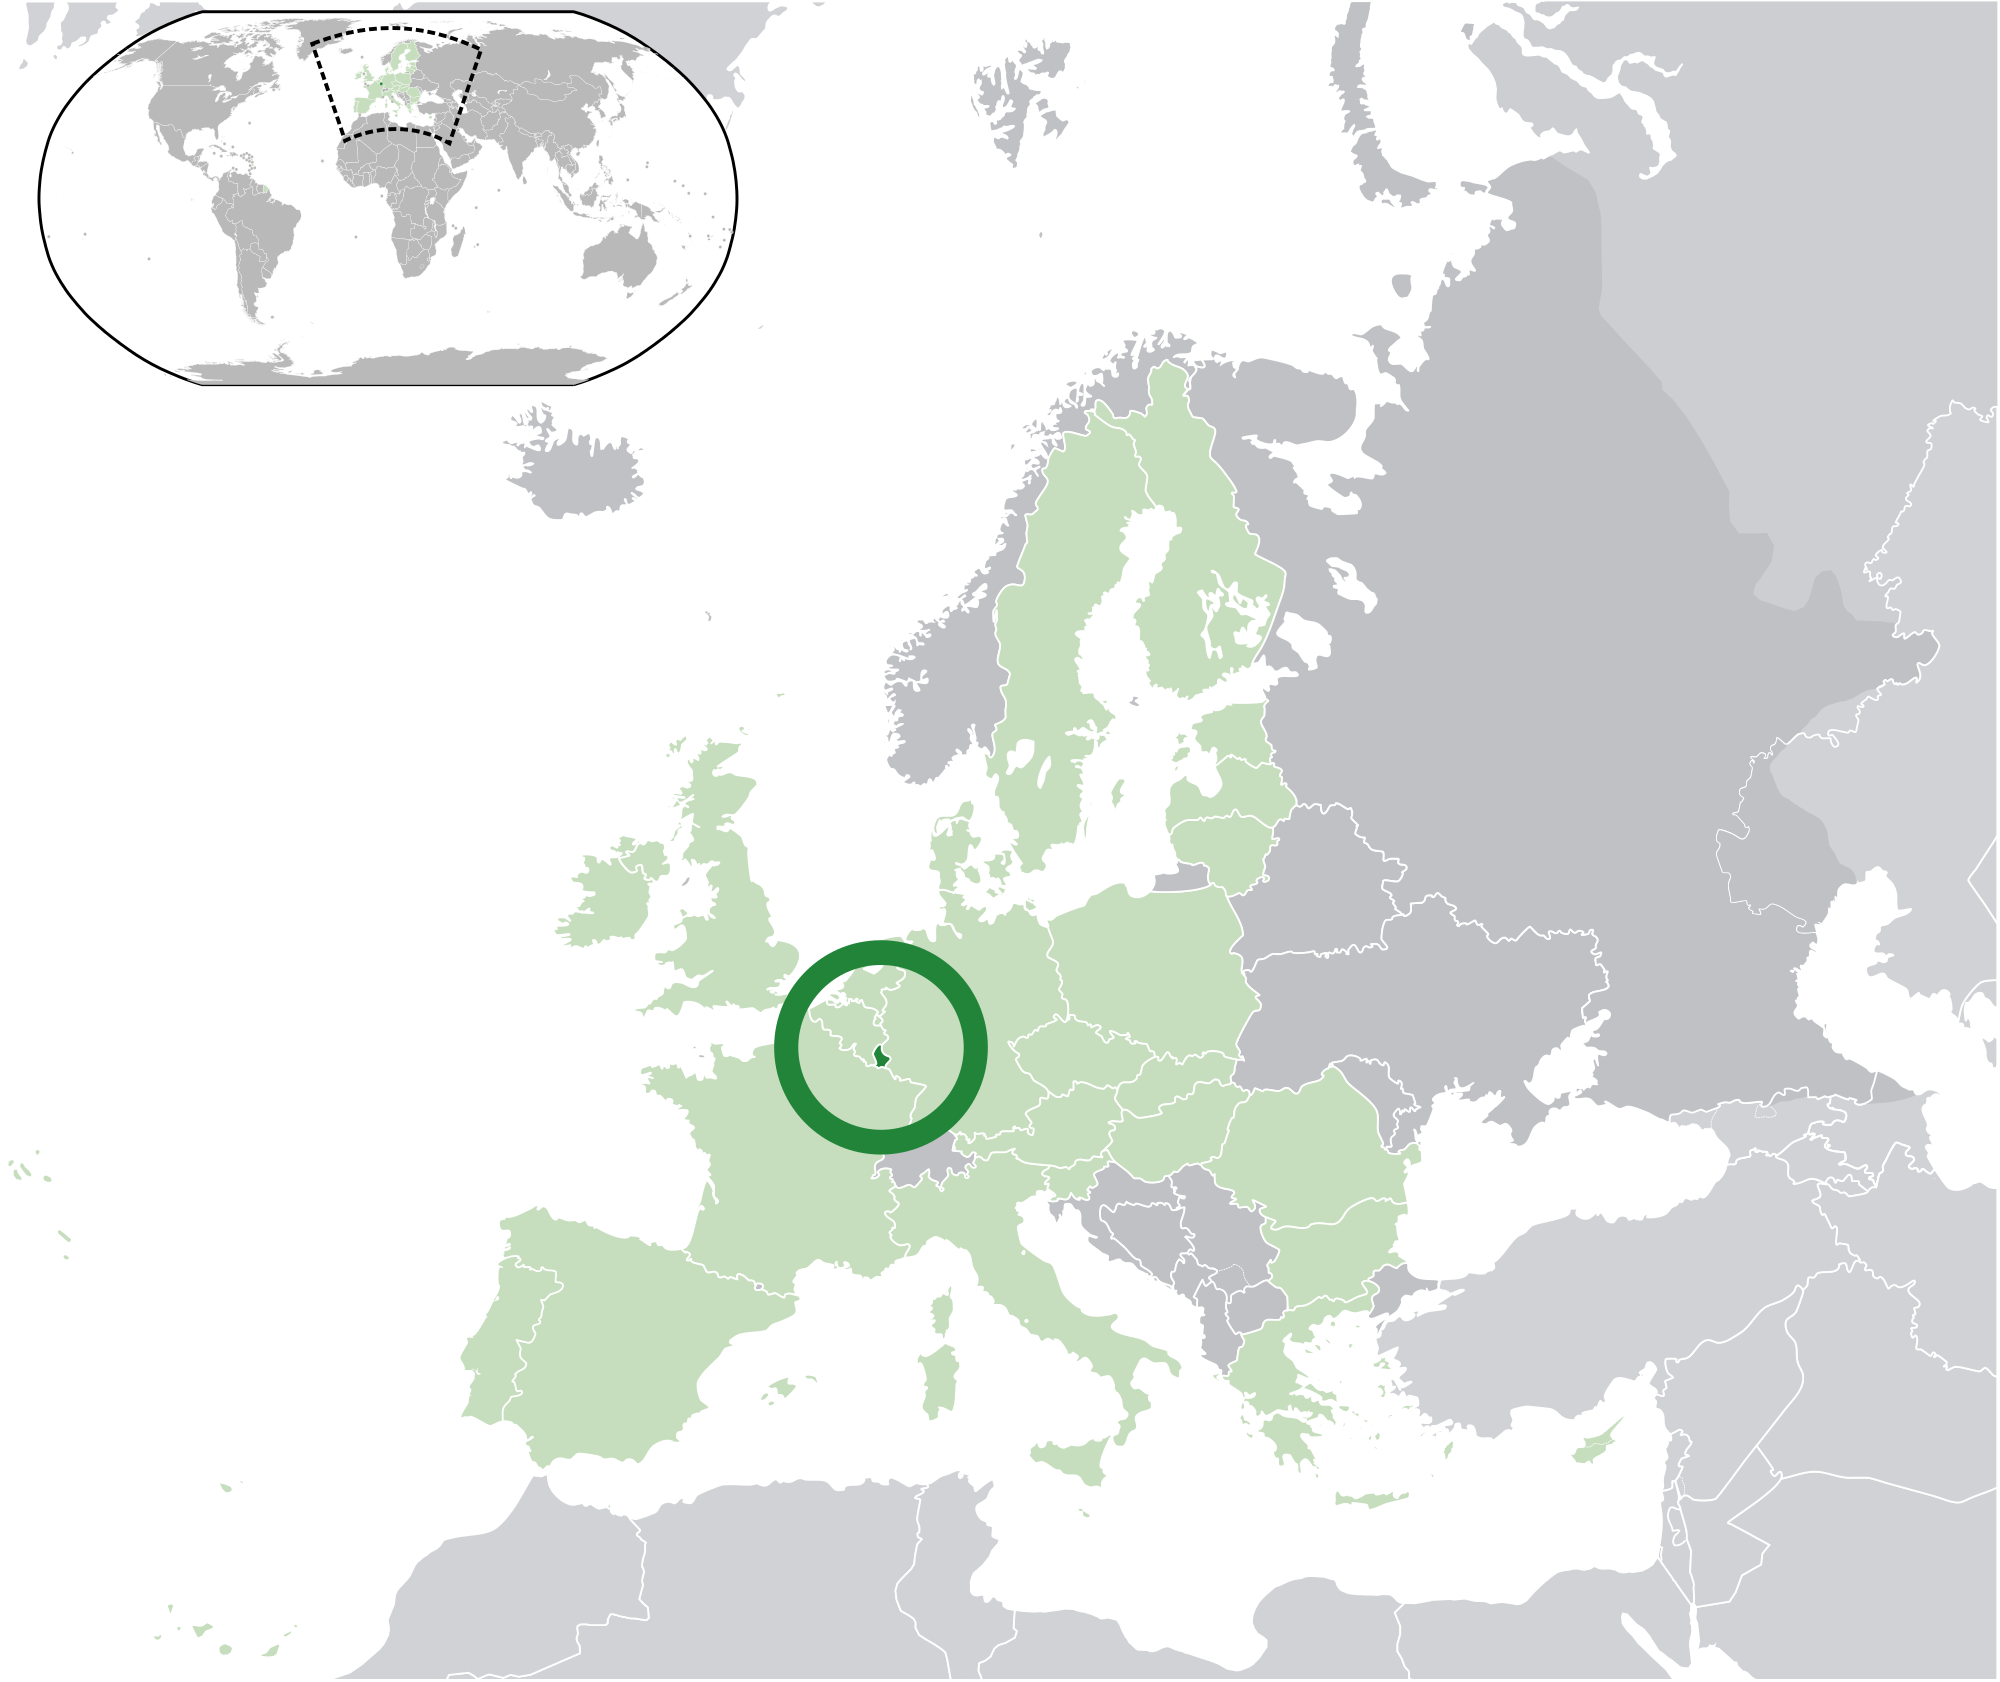 Location of the Luxembourg in the World Map